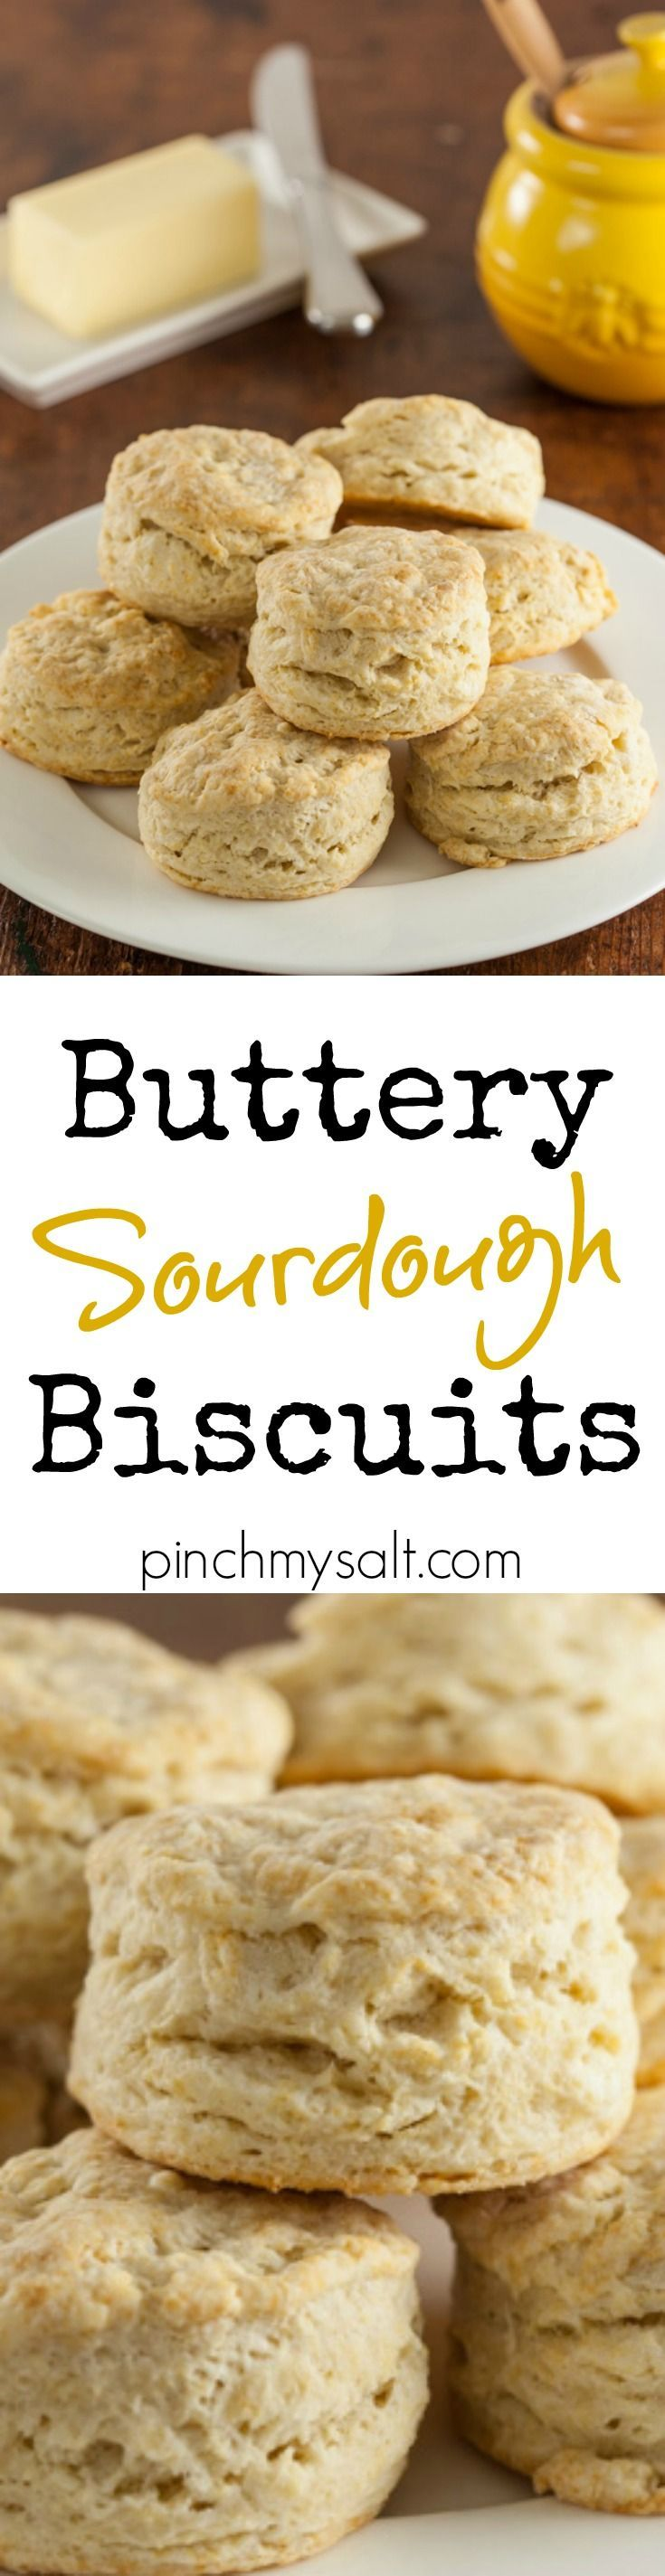 These quick, easy, and buttery sourdough biscuits are the perfect way to use up some sourdough discard when feeding your sourdough starter. | http://pinchmysalt.com